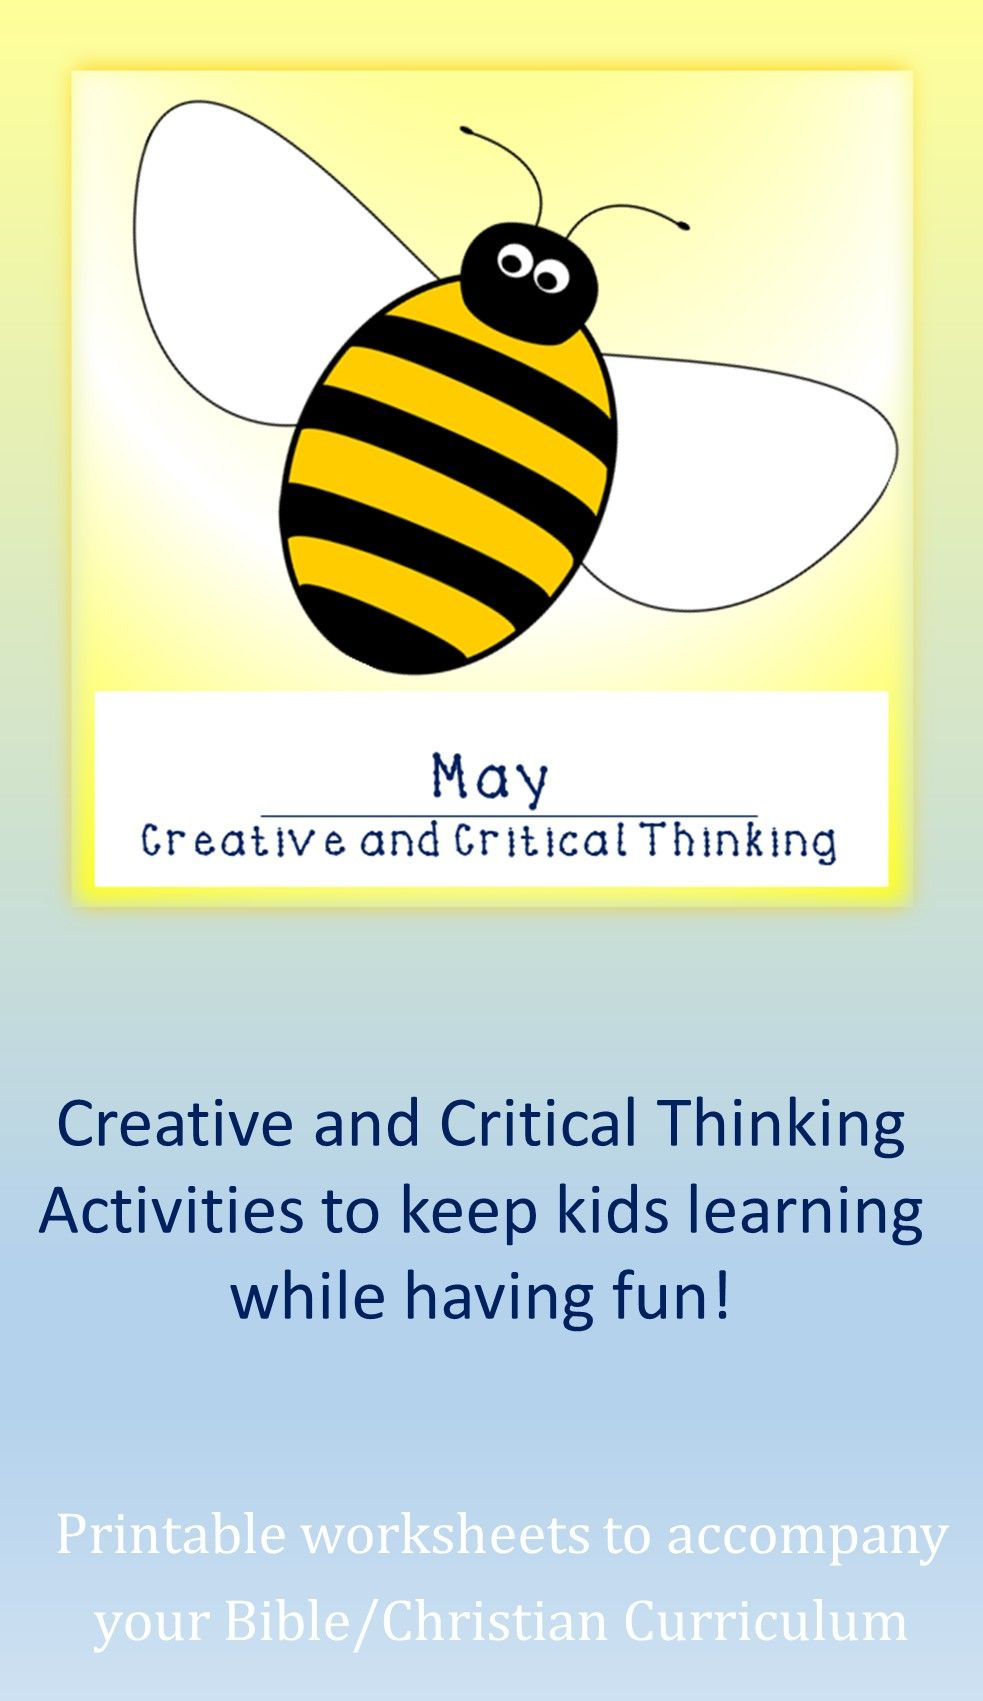 May Creative And Critical Thinking In 2020 Critical Thinking Activities Christian Curriculum Critical Thinking [ 1701 x 983 Pixel ]